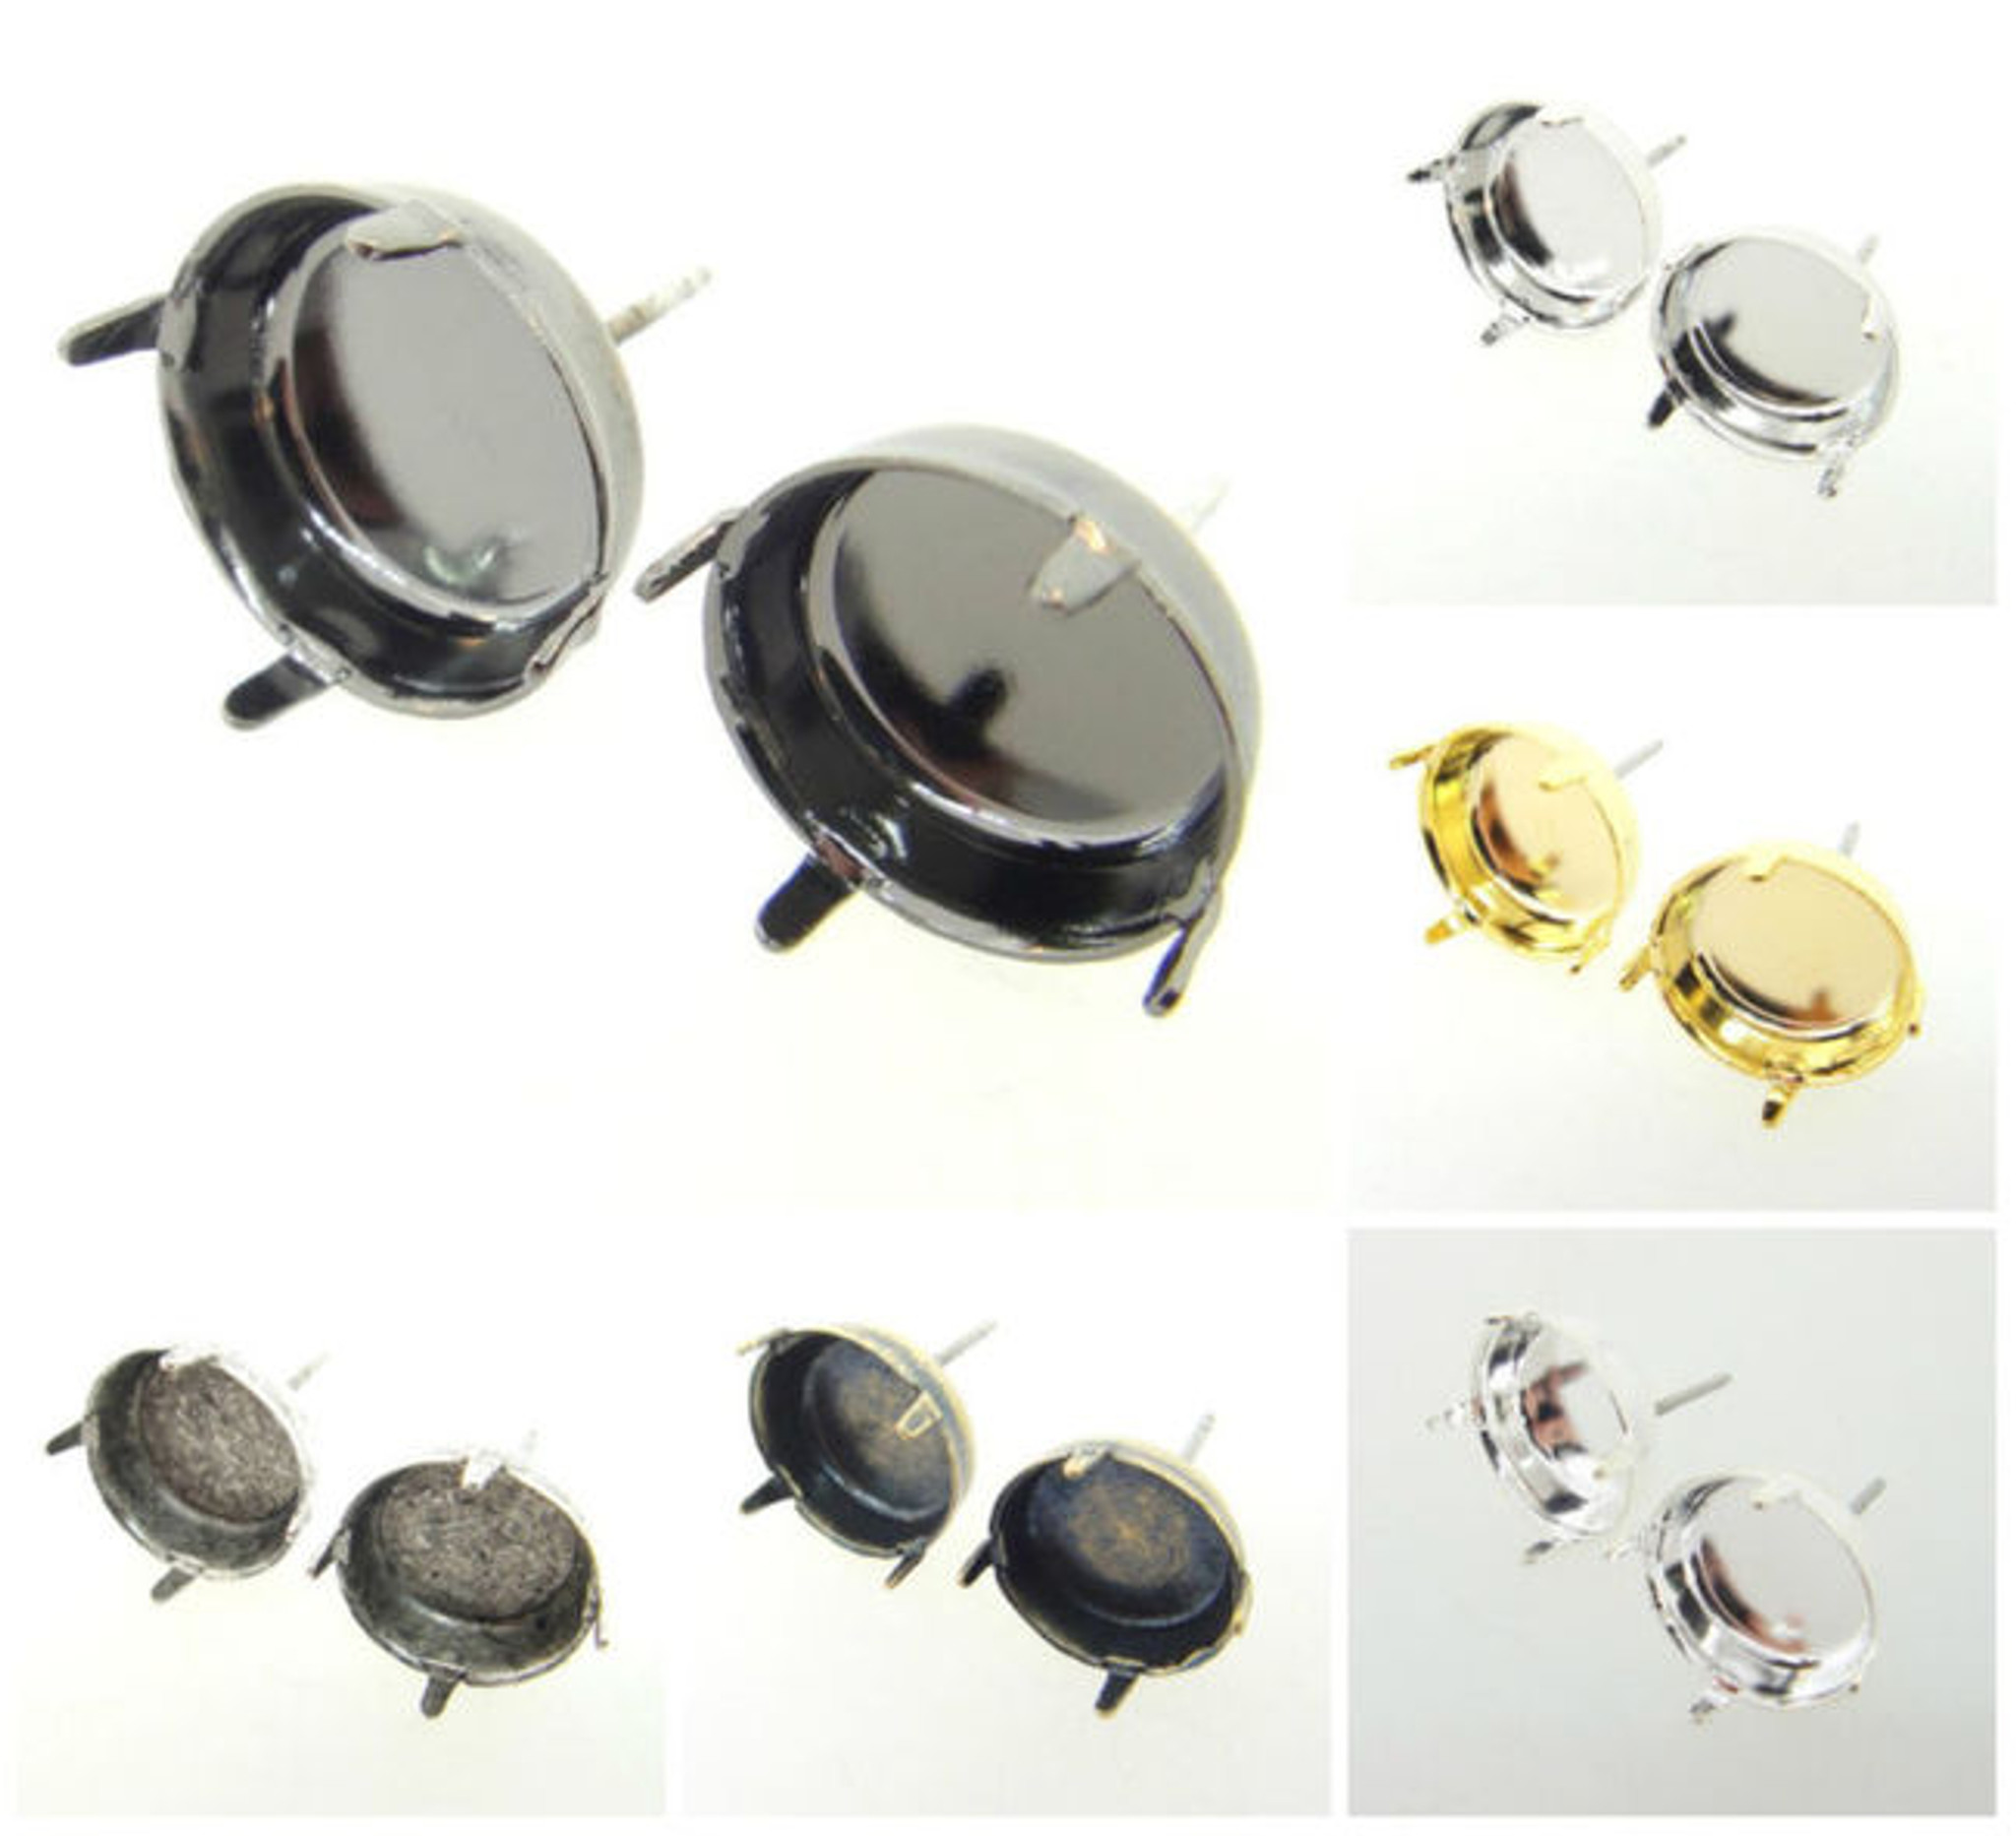 12mm RoundClassic Stud DIY Earring BasesThree Pairs EE 15